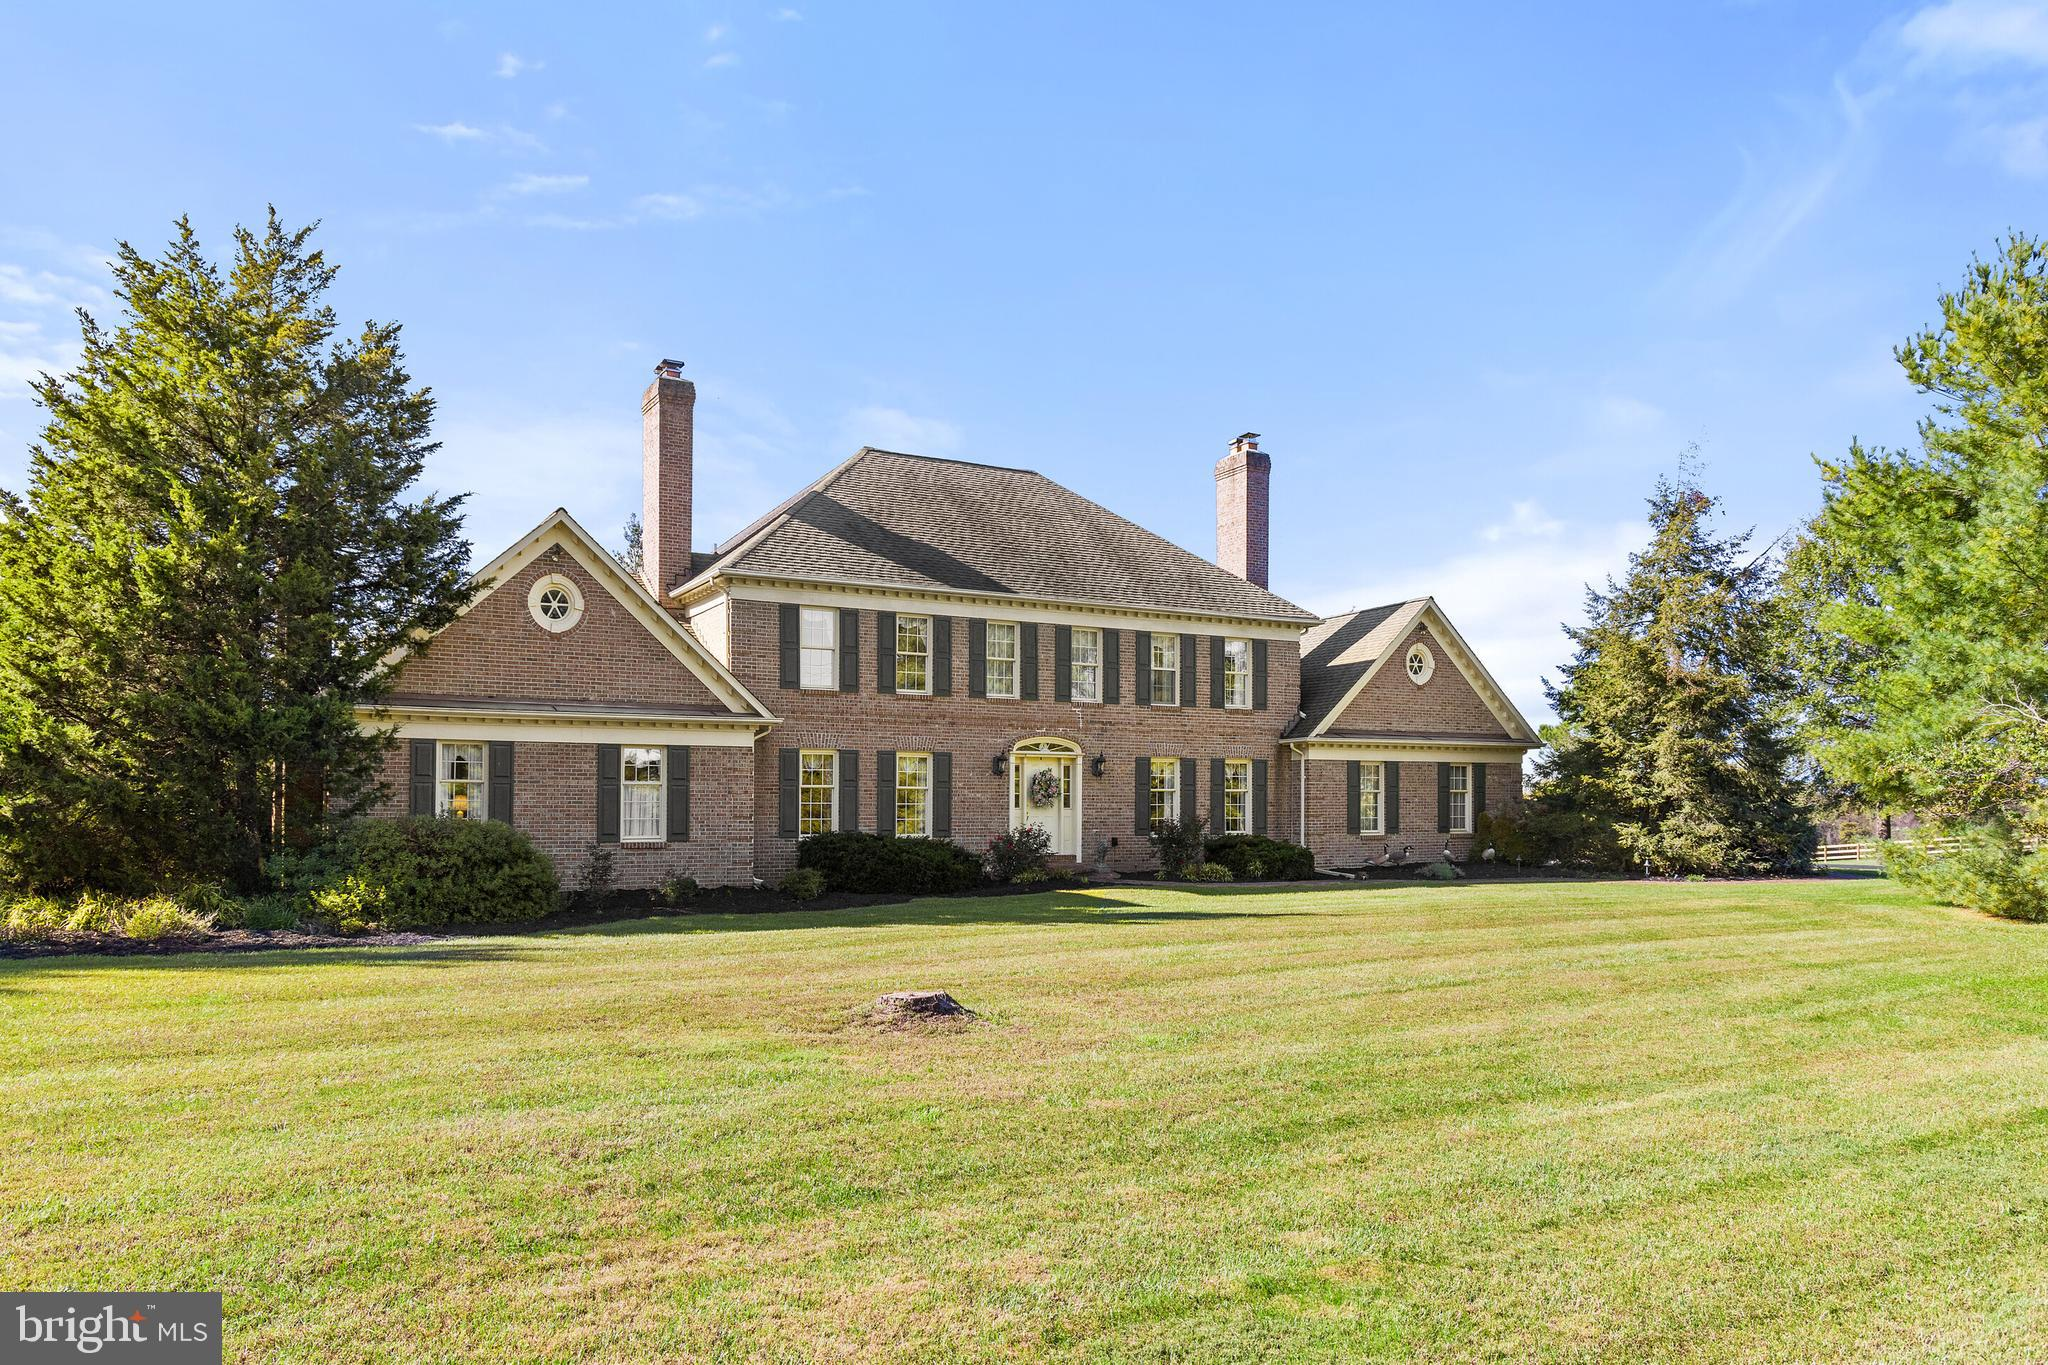 A well-built & meticulously maintained twin chimney brick colonial on 15 acres with a 3-stall barn. This lovely home was custom built by it's current owner and maintains a traditional center hall colonial style floorplan with hardwood floors on the main and upper levels as well as exquisite molding and details throughout. No 'cookie cutter' home here! For the visionary, this home with some updates could be a real show stopper! Room to add a pool or perhaps renovate the workshop/office space (23x23) with a separate entrance into a main level primary suite. The upper level has a 17x17 Primary Suite w/fireplace and hardwood floors. The other two bedrooms (ensuite) have hardwood floors as well. A nice sized kitchen w/granite and exposed brick walls surround the 6 burner cooktop and double ovens. Step down into a cozy family room w/fireplace, bay window and direct access to the back patio. The den/office space w/fireplace can be utilized as a 4th bedroom as the 1/2 bath and closet are located just off the hallway. There is a second full bath off of the laundry room. The formal living room and dining room are located conveniently off of the center hall foyer and both have fireplaces. Add some fencing and you're ready to bring the horses, etc. Not wanting to have horses? Then maybe you'll want to convert the barn into a woodworking space, or the ultimate party barn! So there are many options to consider with this superbly built and well-located property!